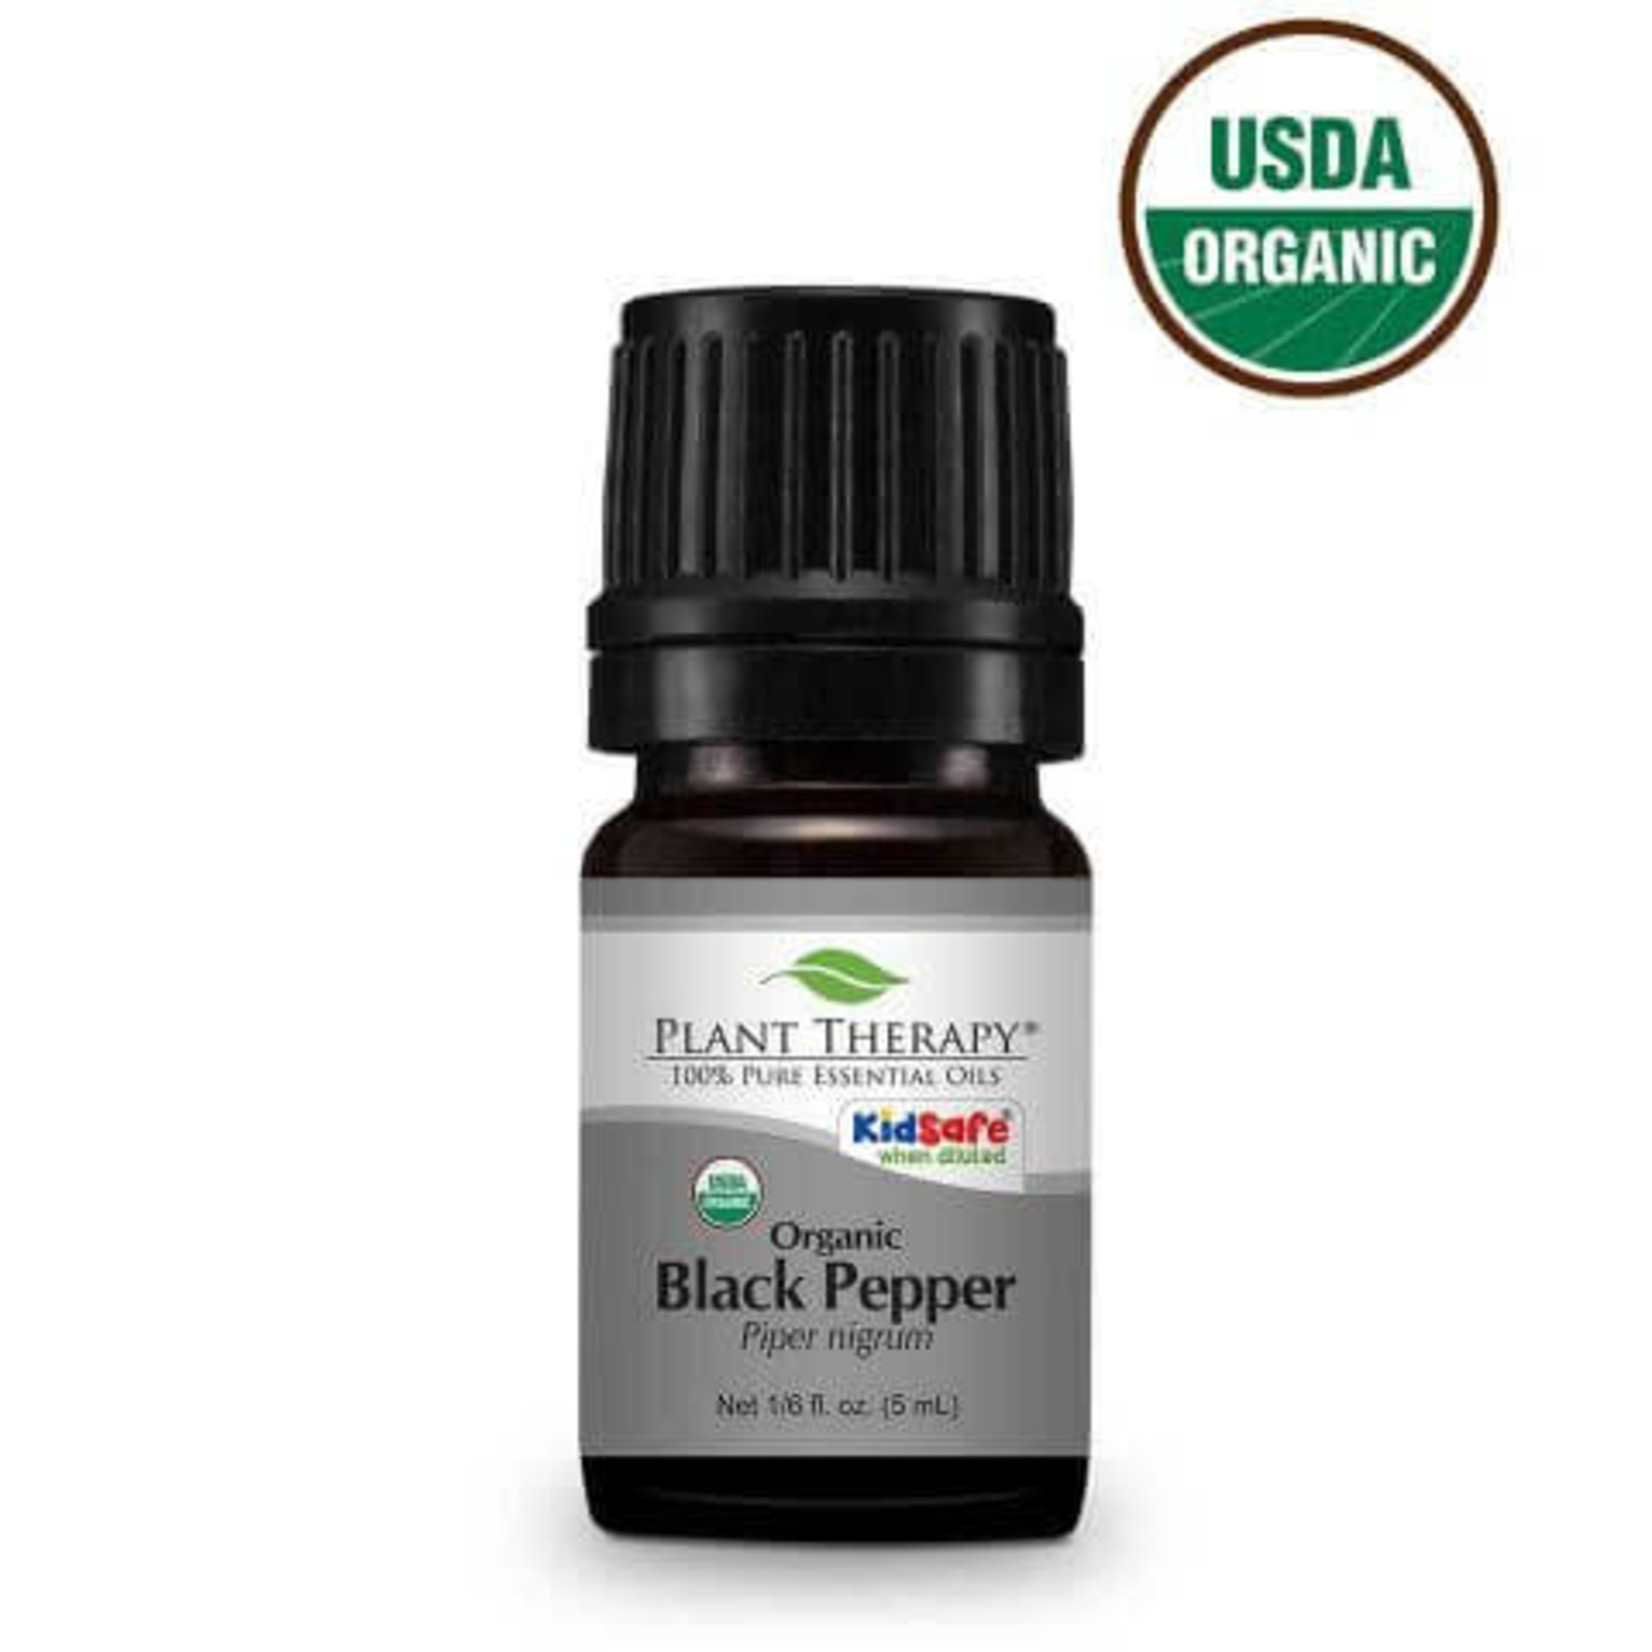 Plant Therapy PT Black Pepper Organic Essential Oil 10ml